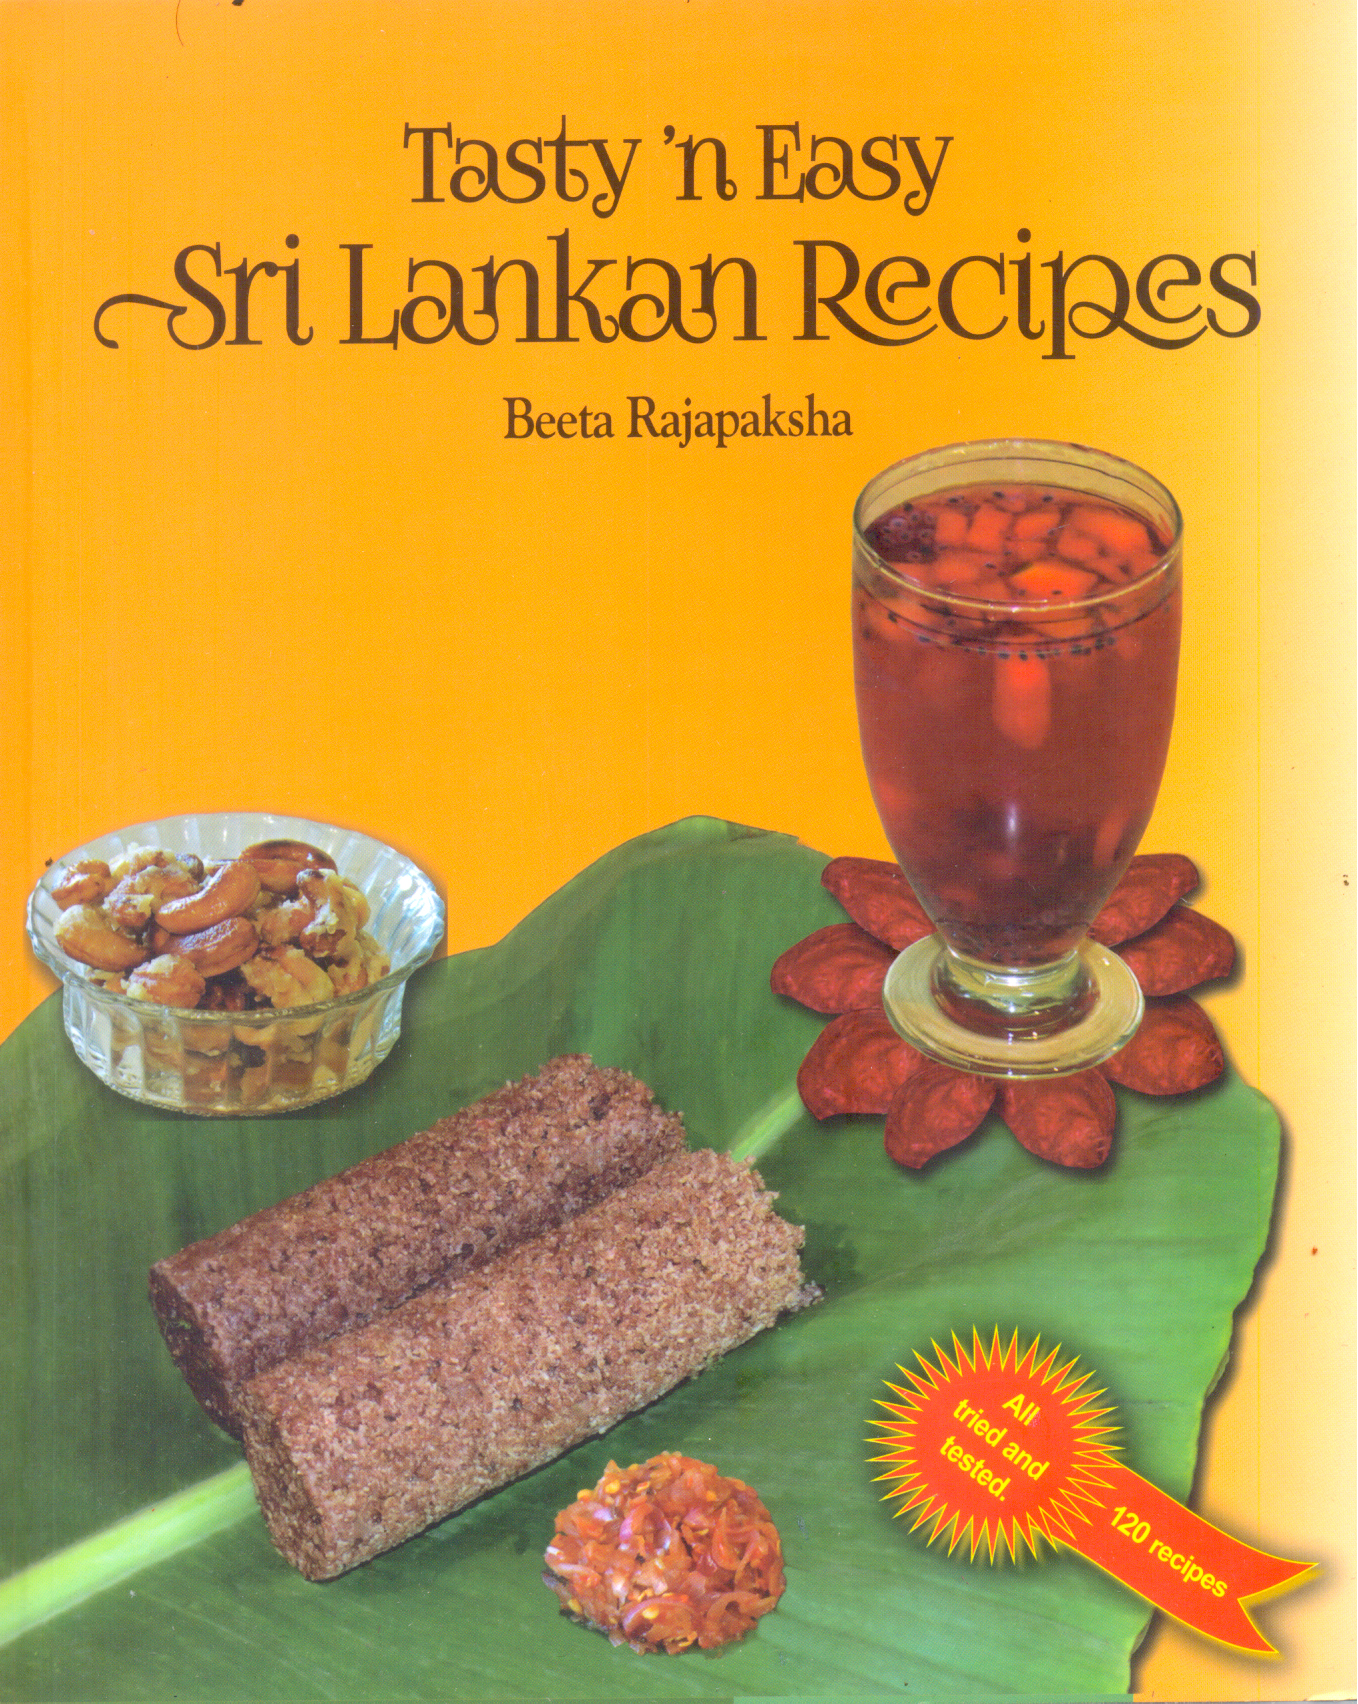 Tasty 'n Easy Sri Lankan Recipes